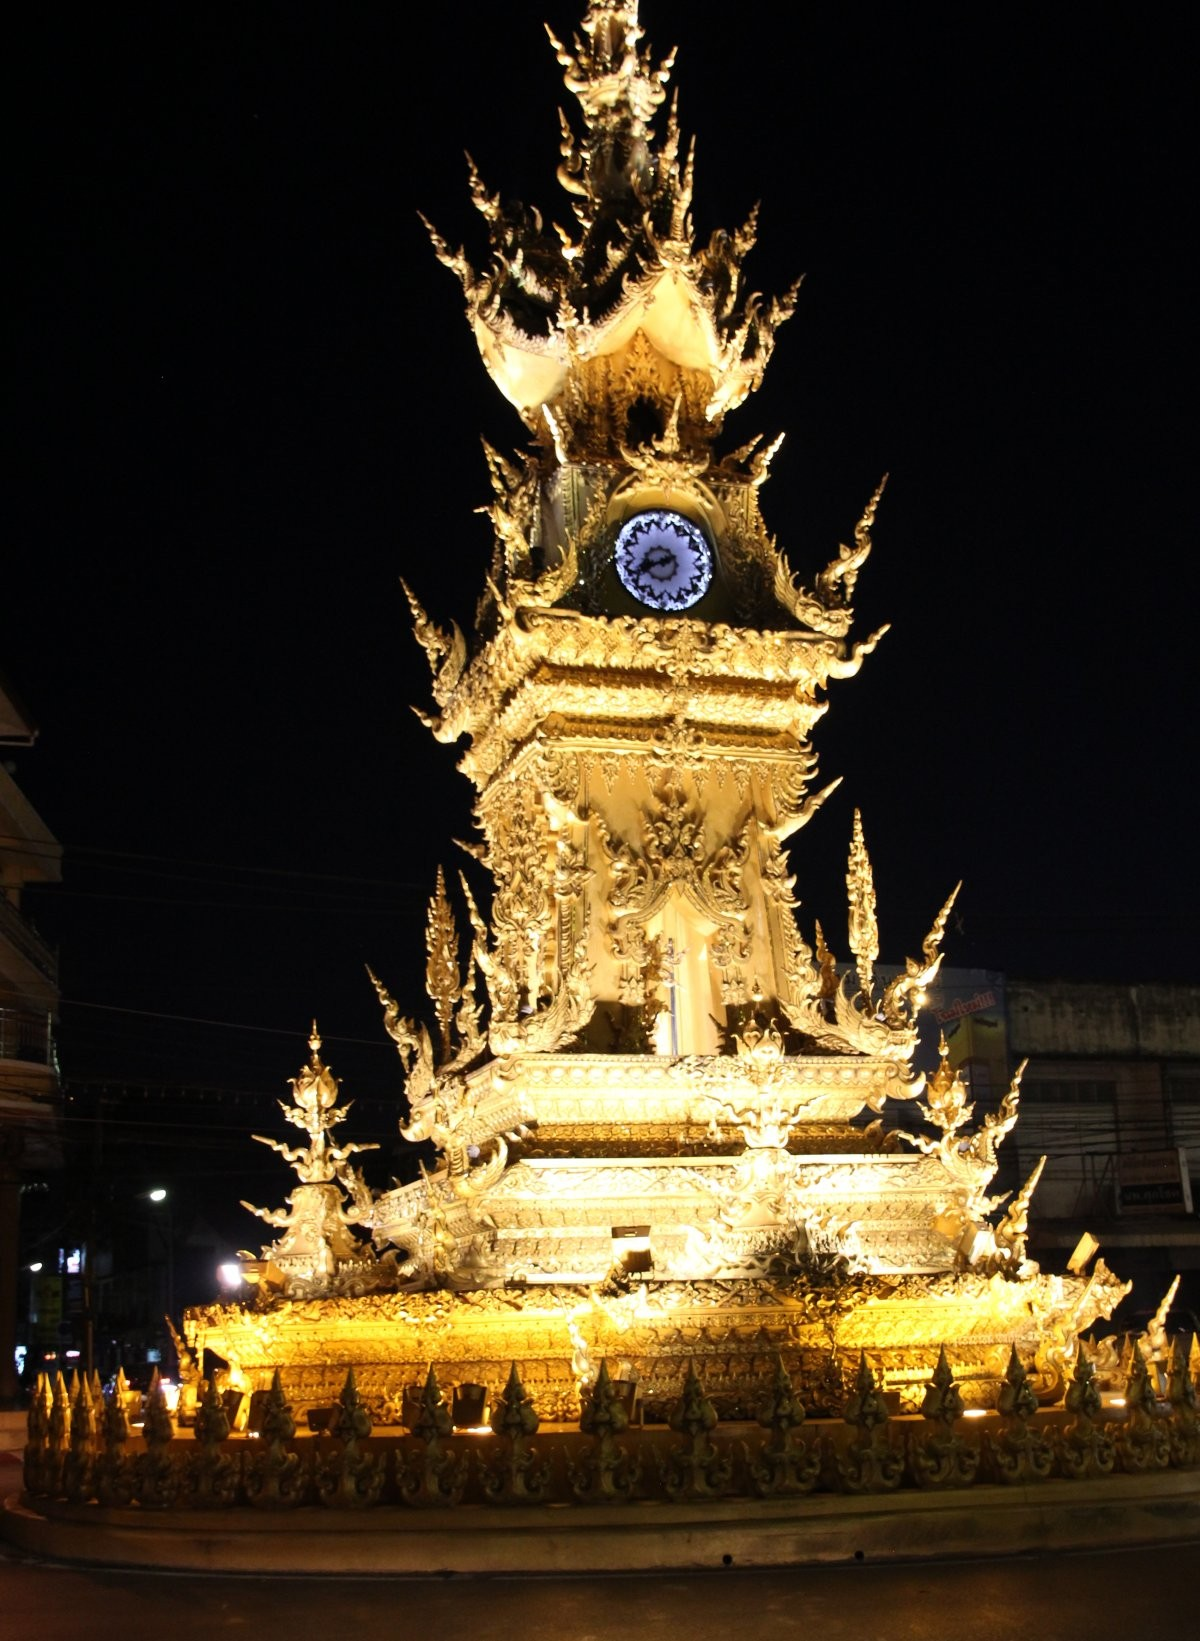 Chiang Rai - Clock Tower in der Nacht